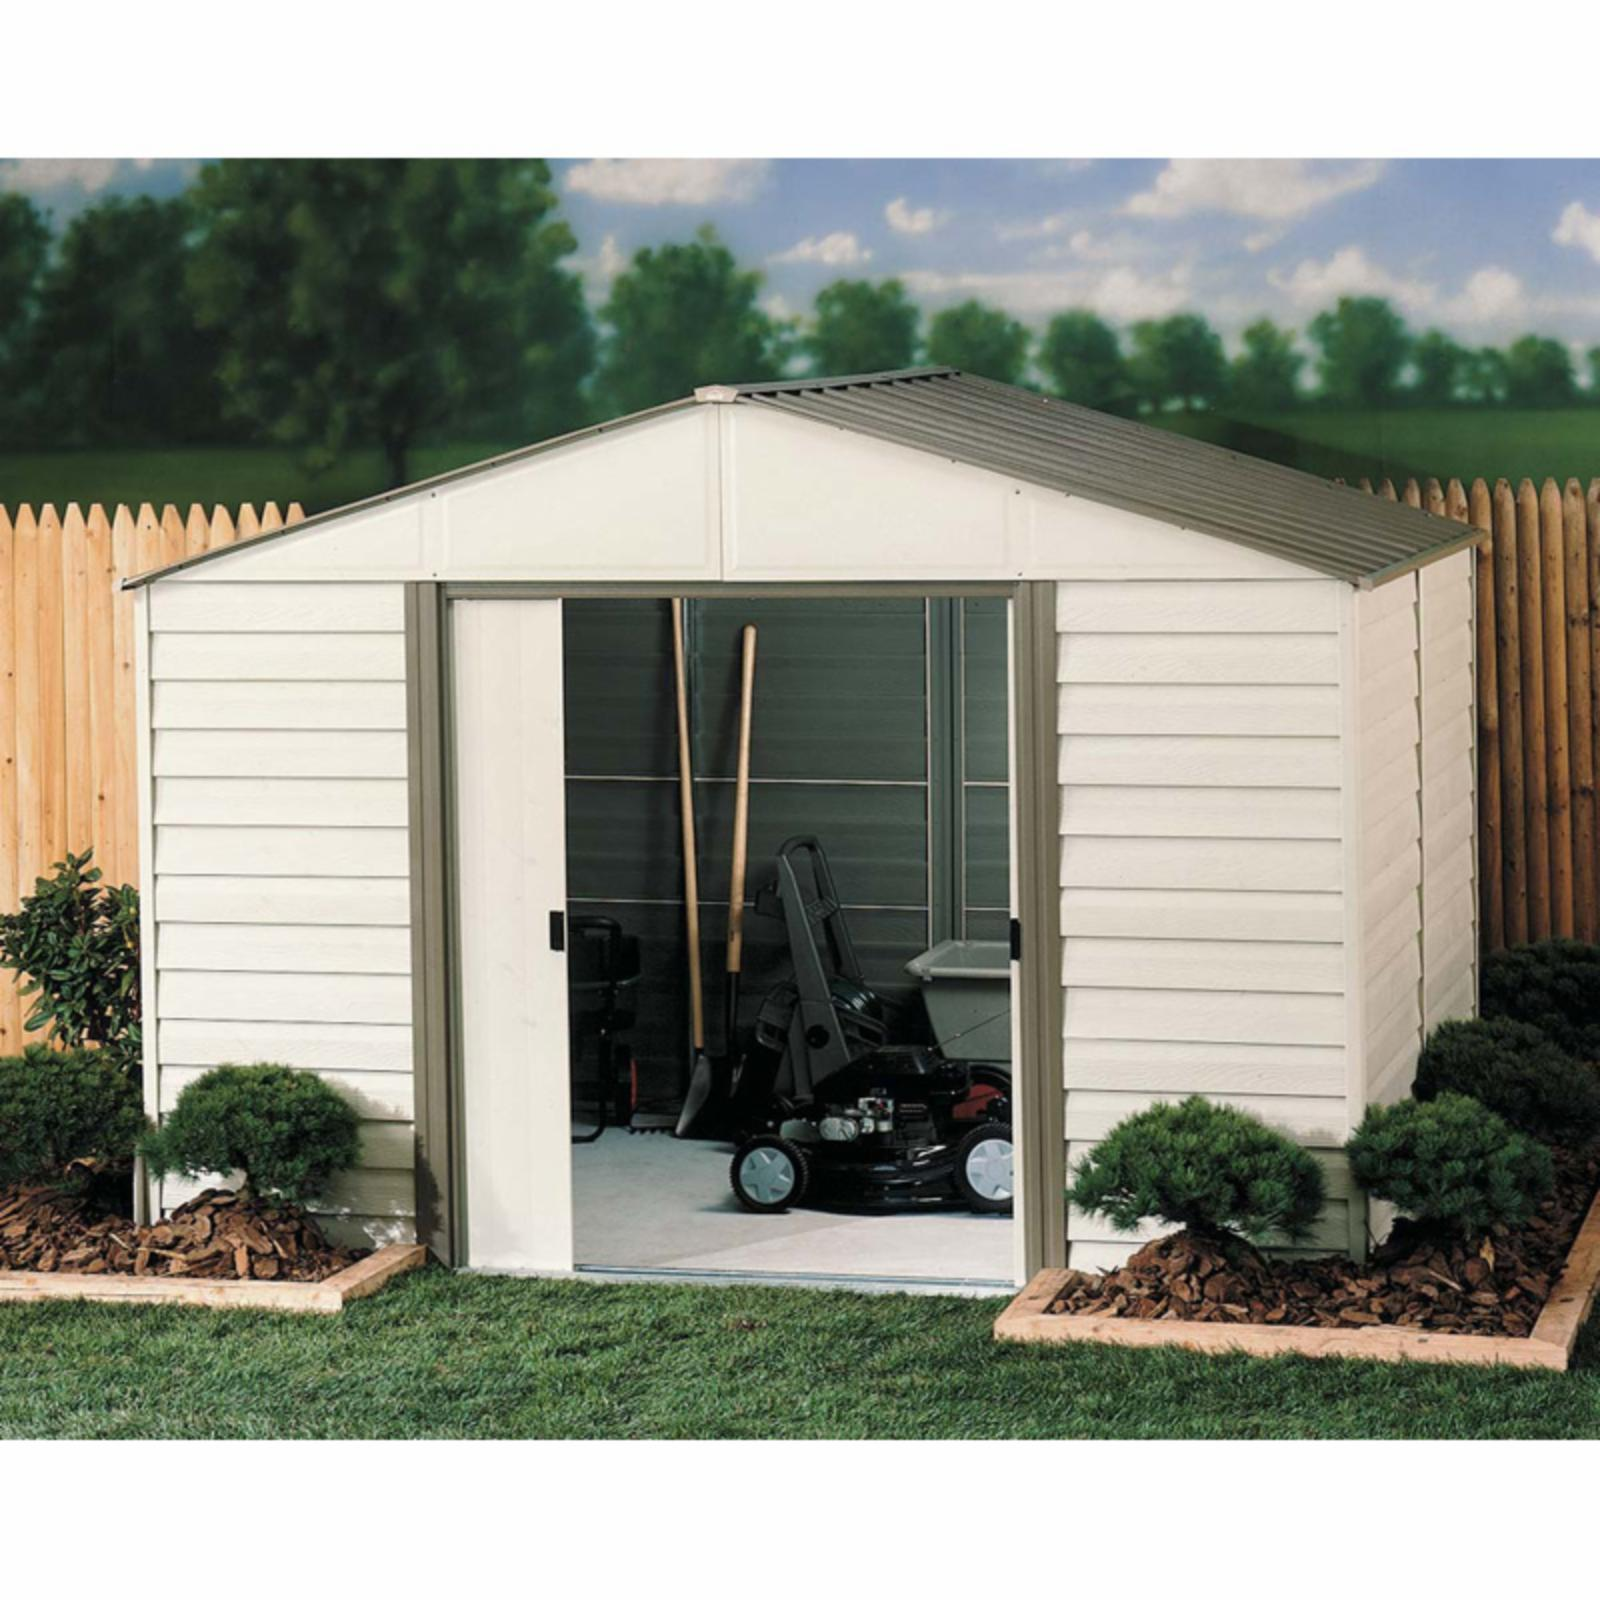 Arrow Shed Vinyl Milford 10 x 12 ft. Shed - VM1012